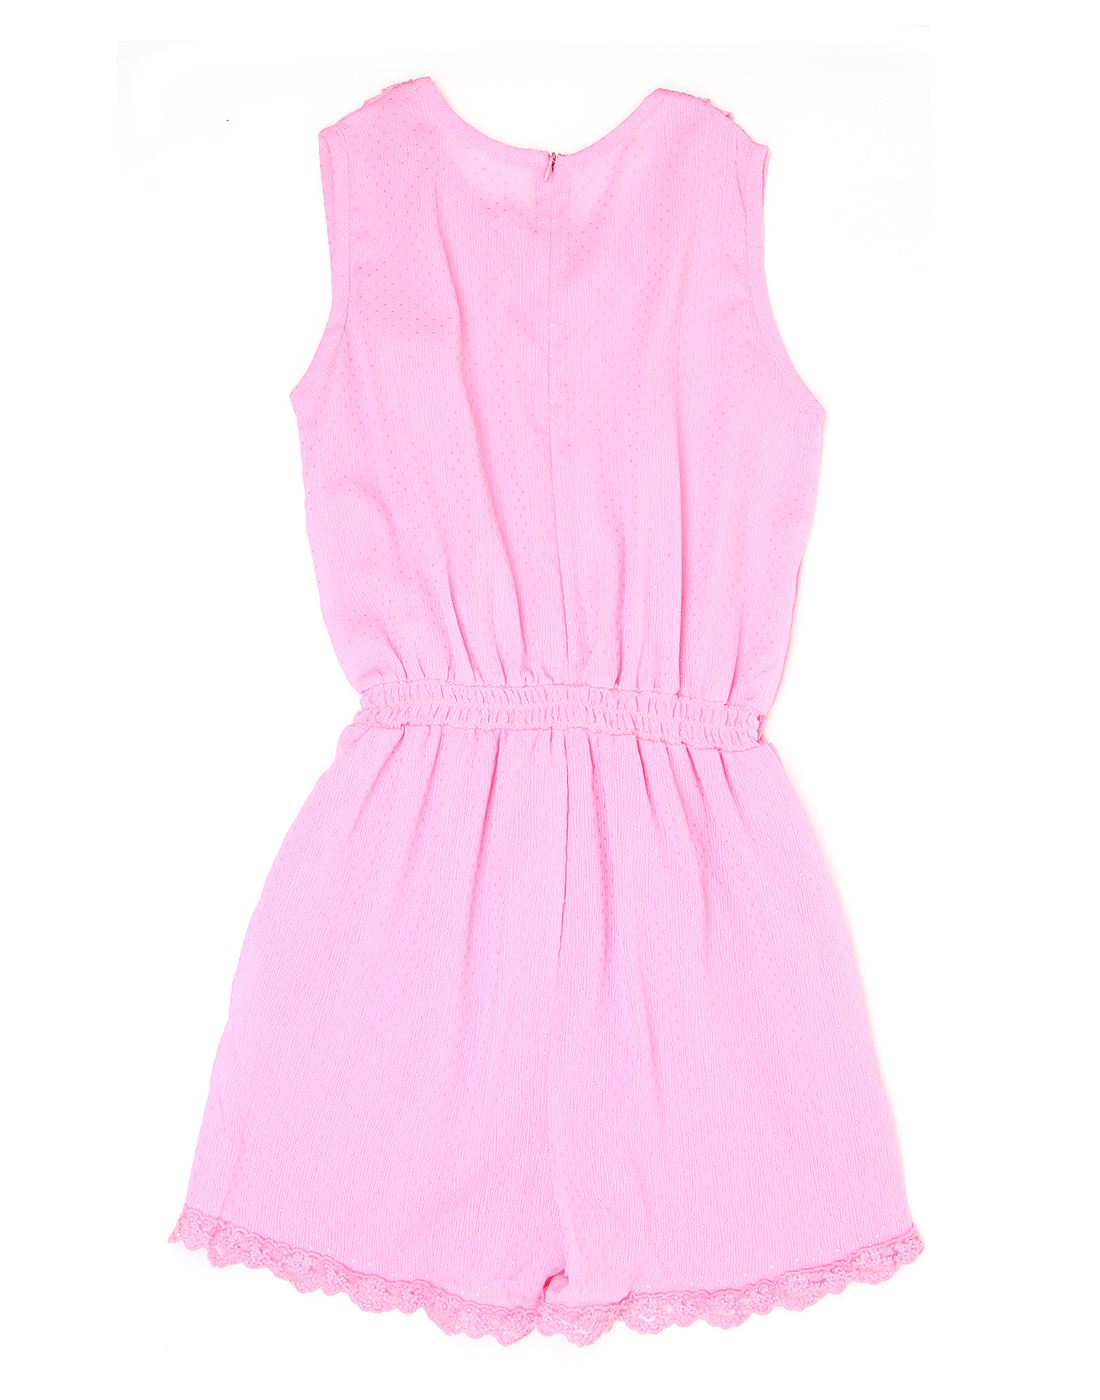 K.C.O 89 Girls Casual Solid Sleeveless Jump Suit